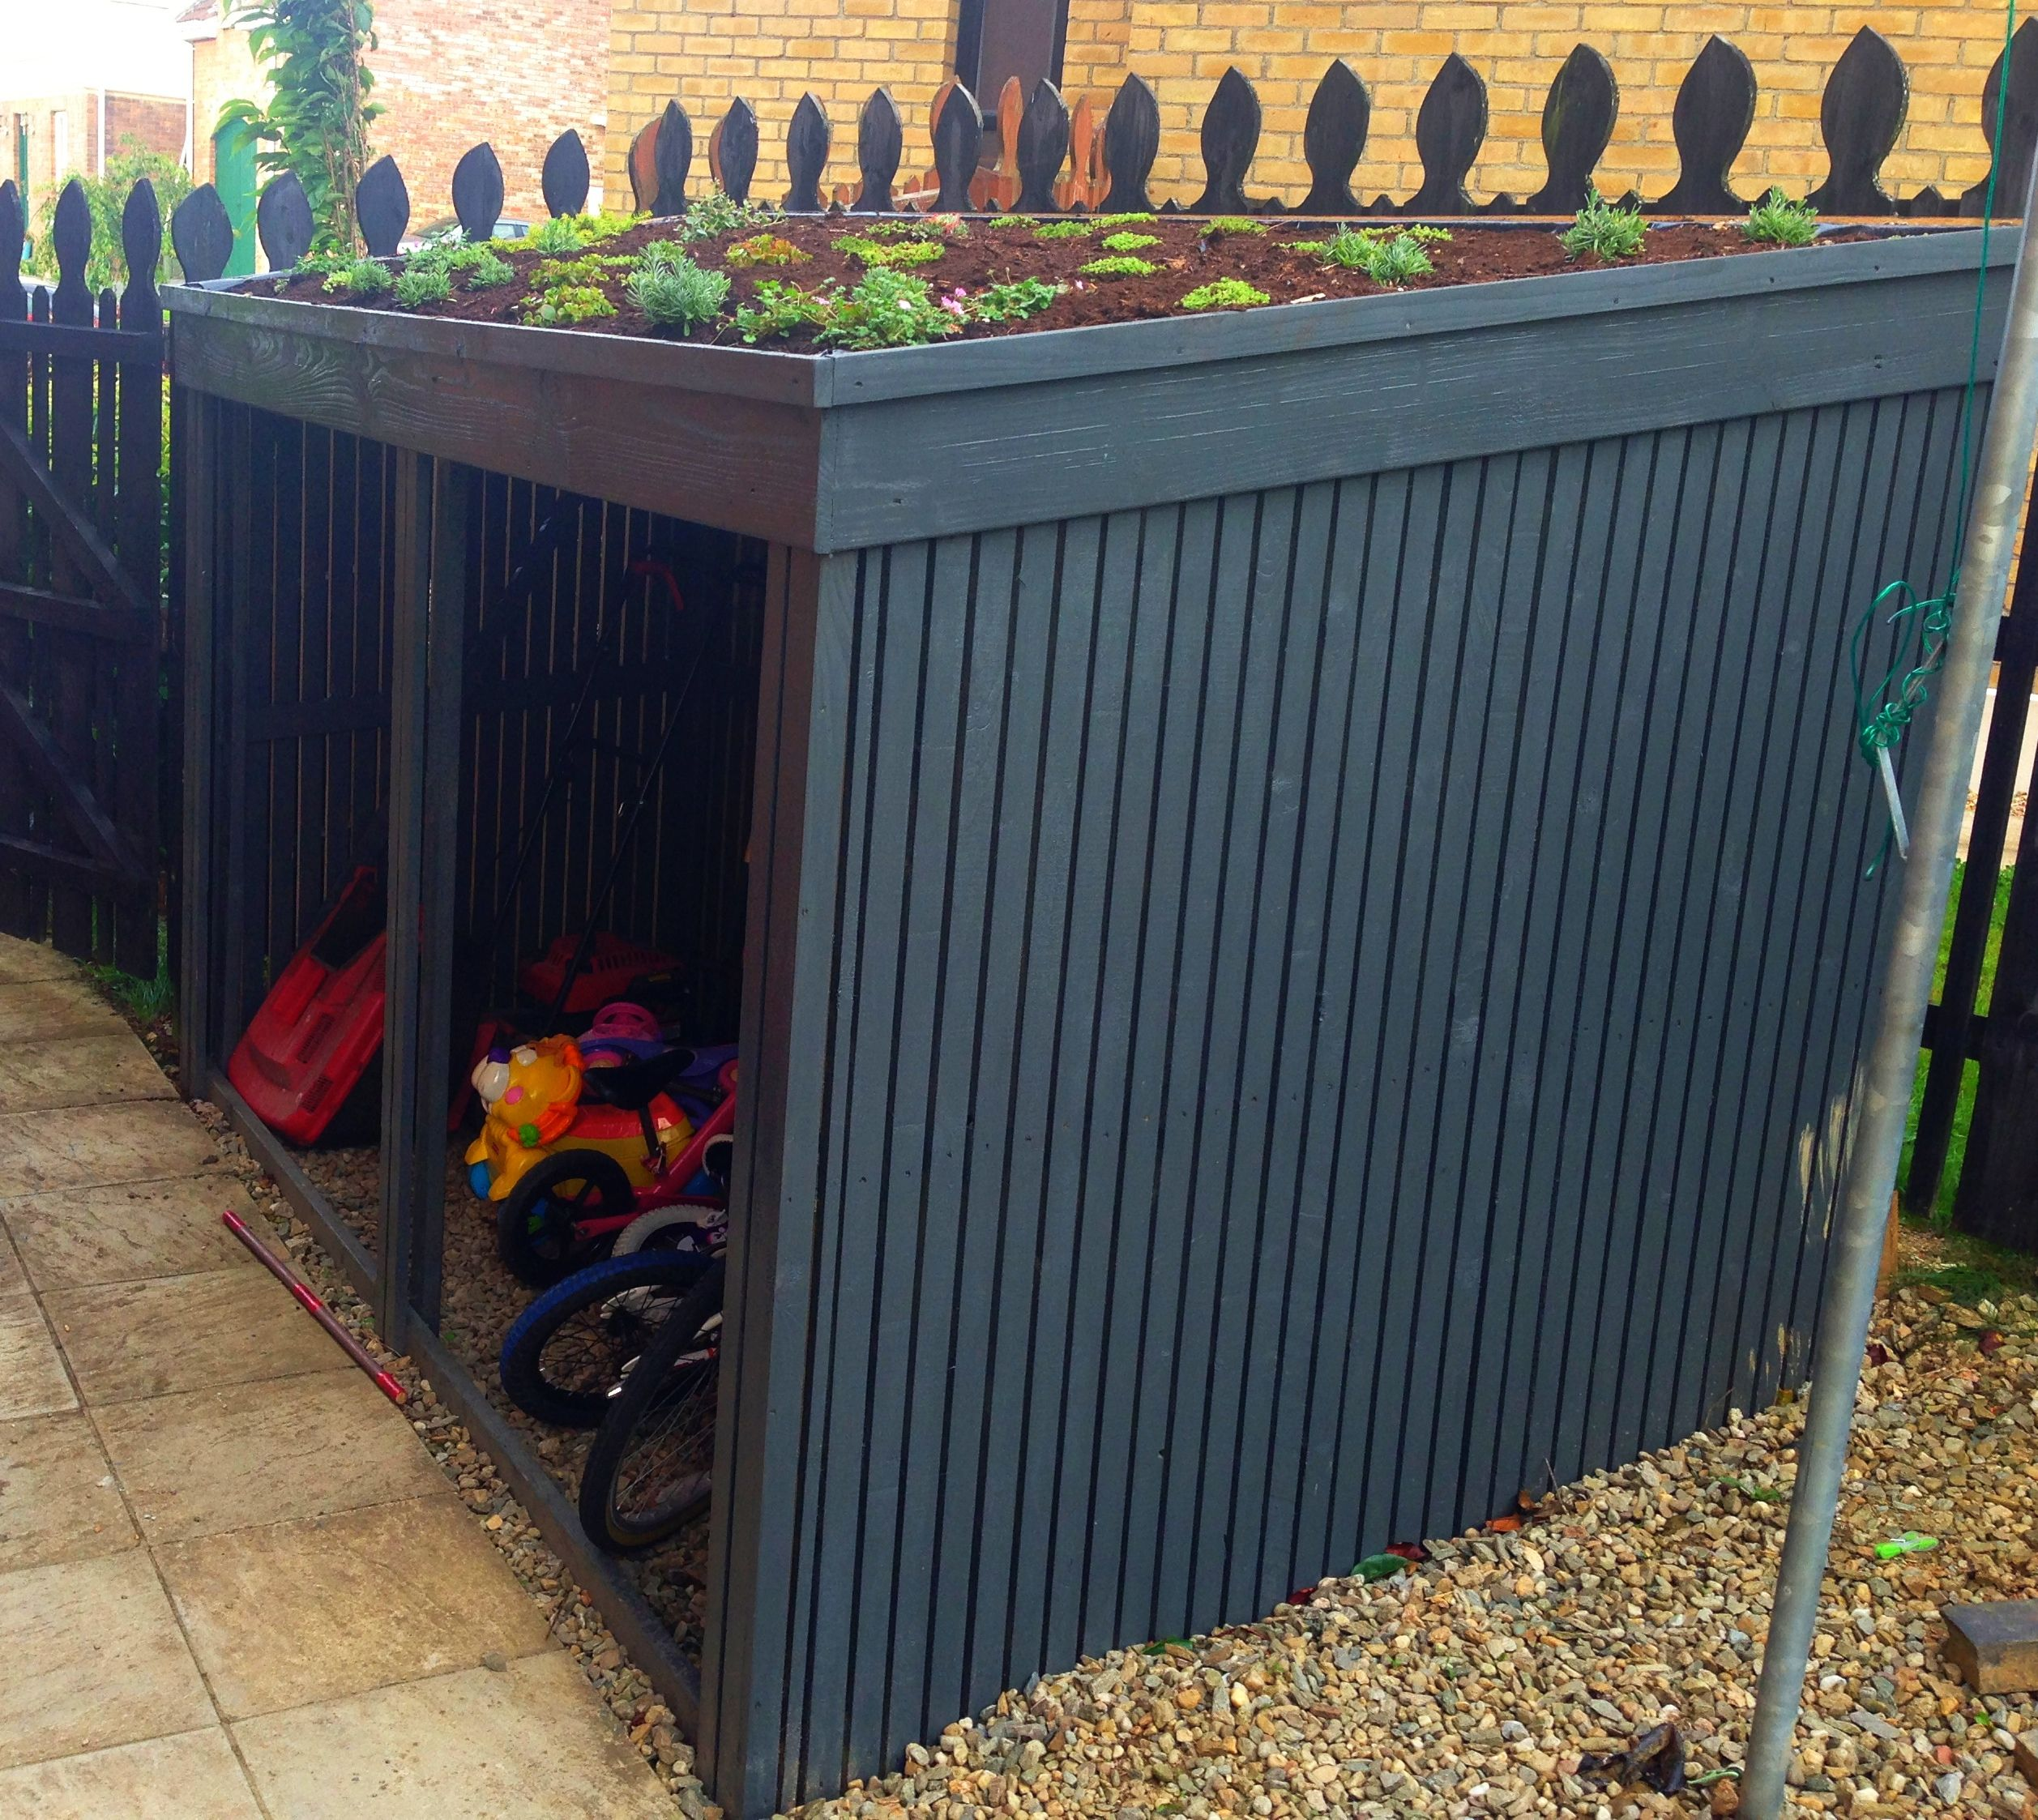 This Is A Bike Shed I Made Over The Summer Outdoor Sheds Outdoor Toy Storage Outdoor Storage Sheds